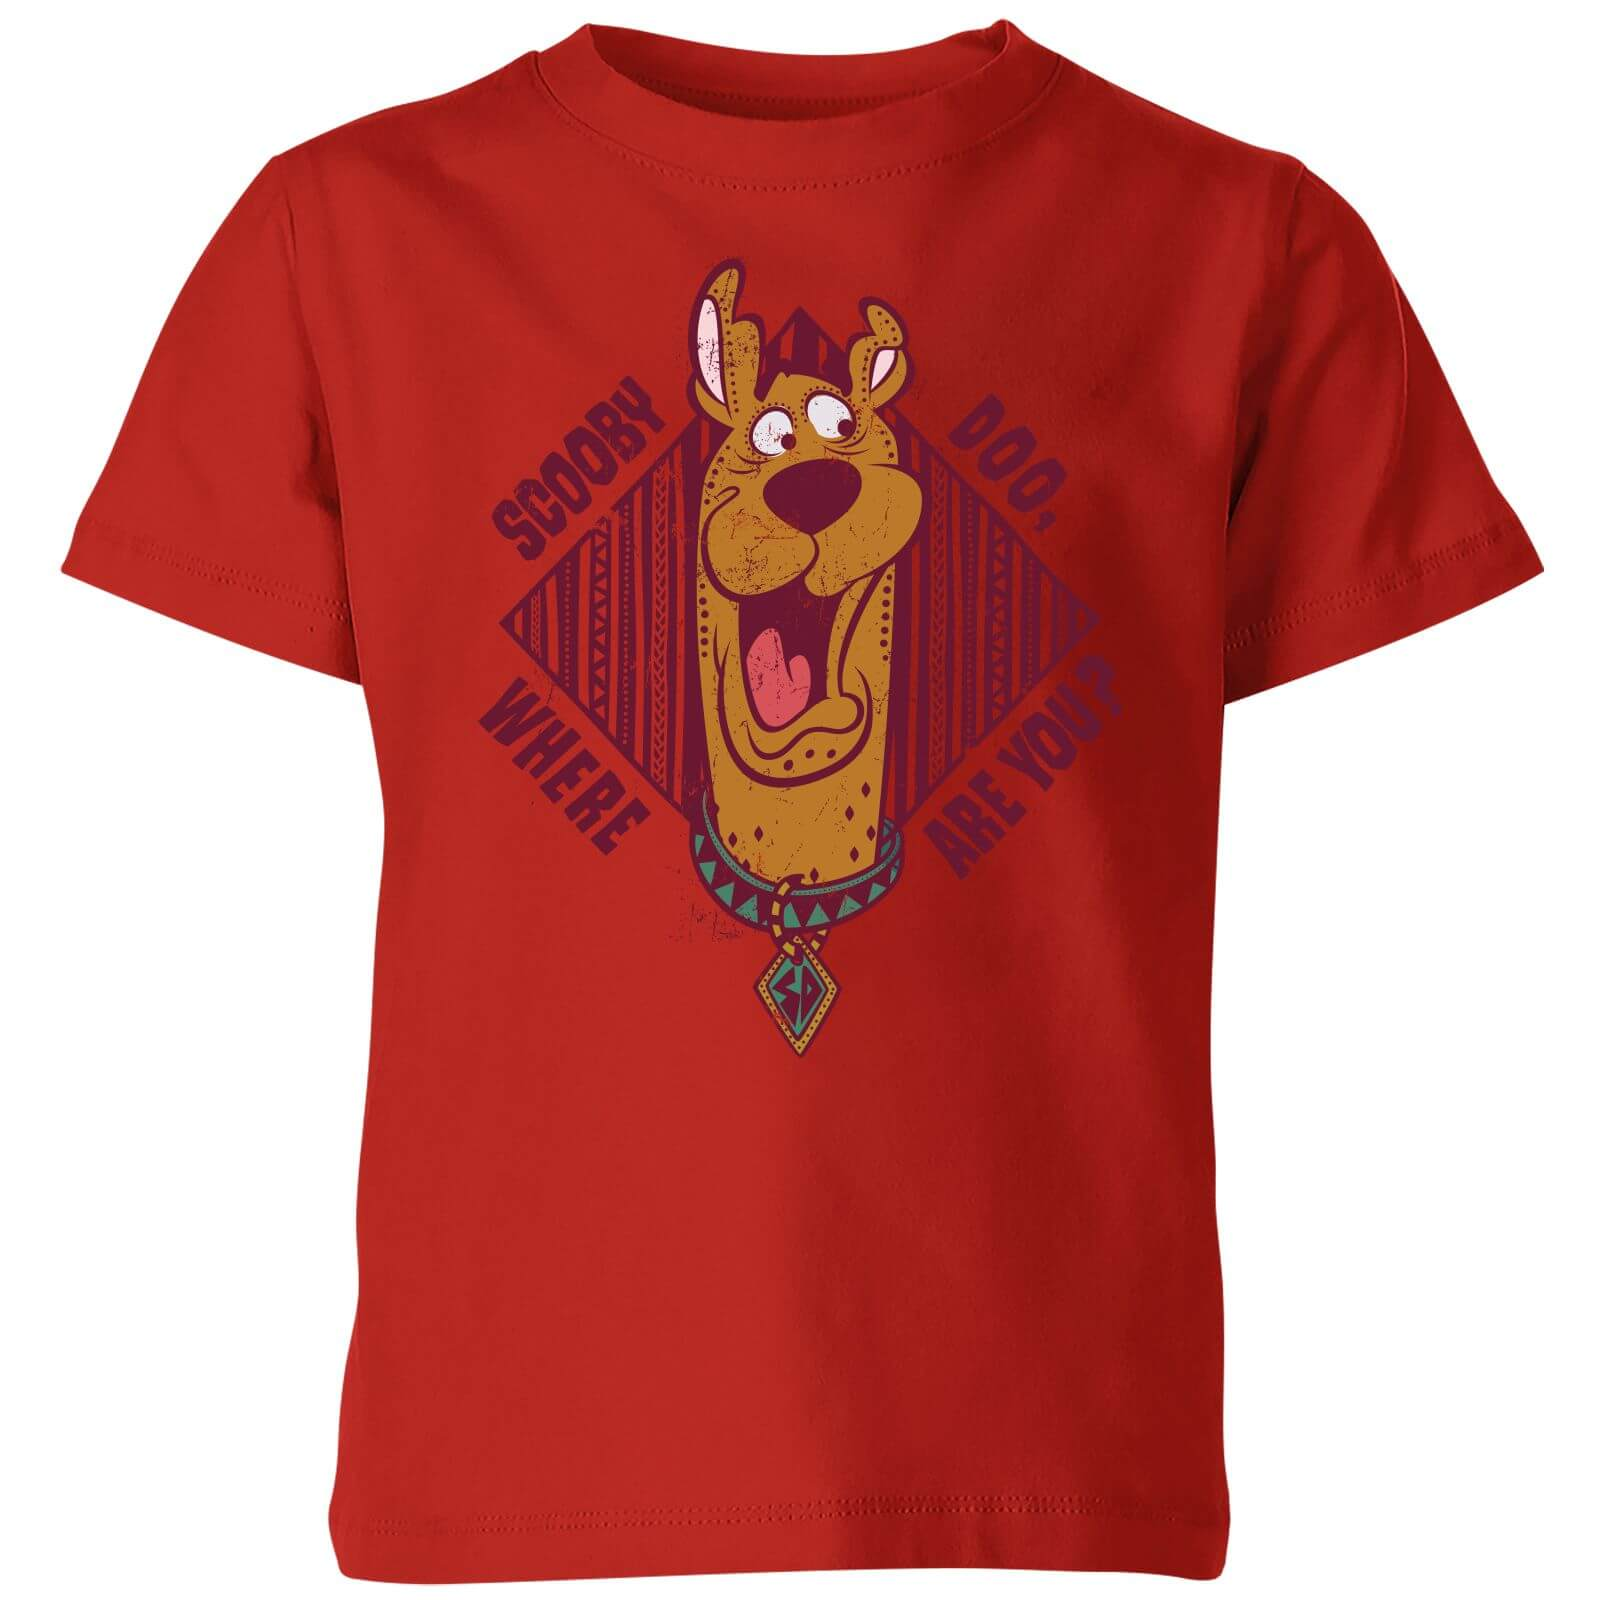 Scooby Doo Where Are You? Kids' T-Shirt - Red - 3-4 años - Rojo de Scooby Doo